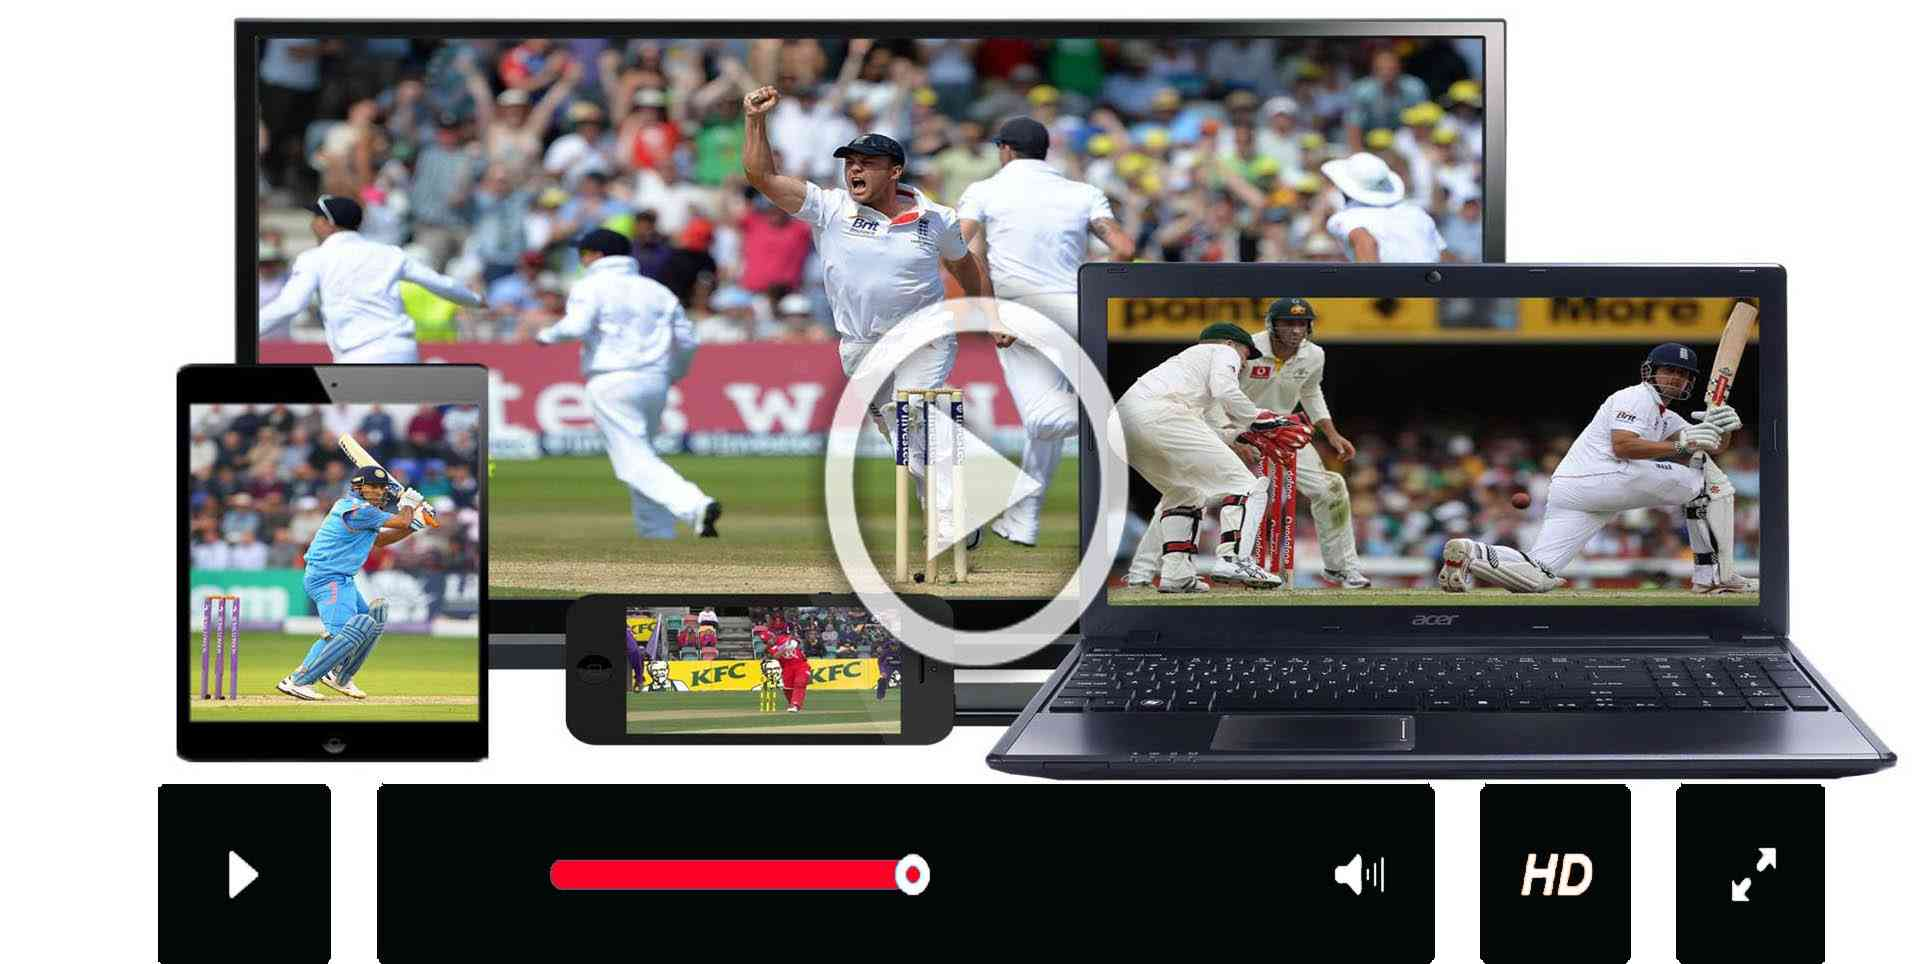 New Zealand vs Sri Lanka Warm up live